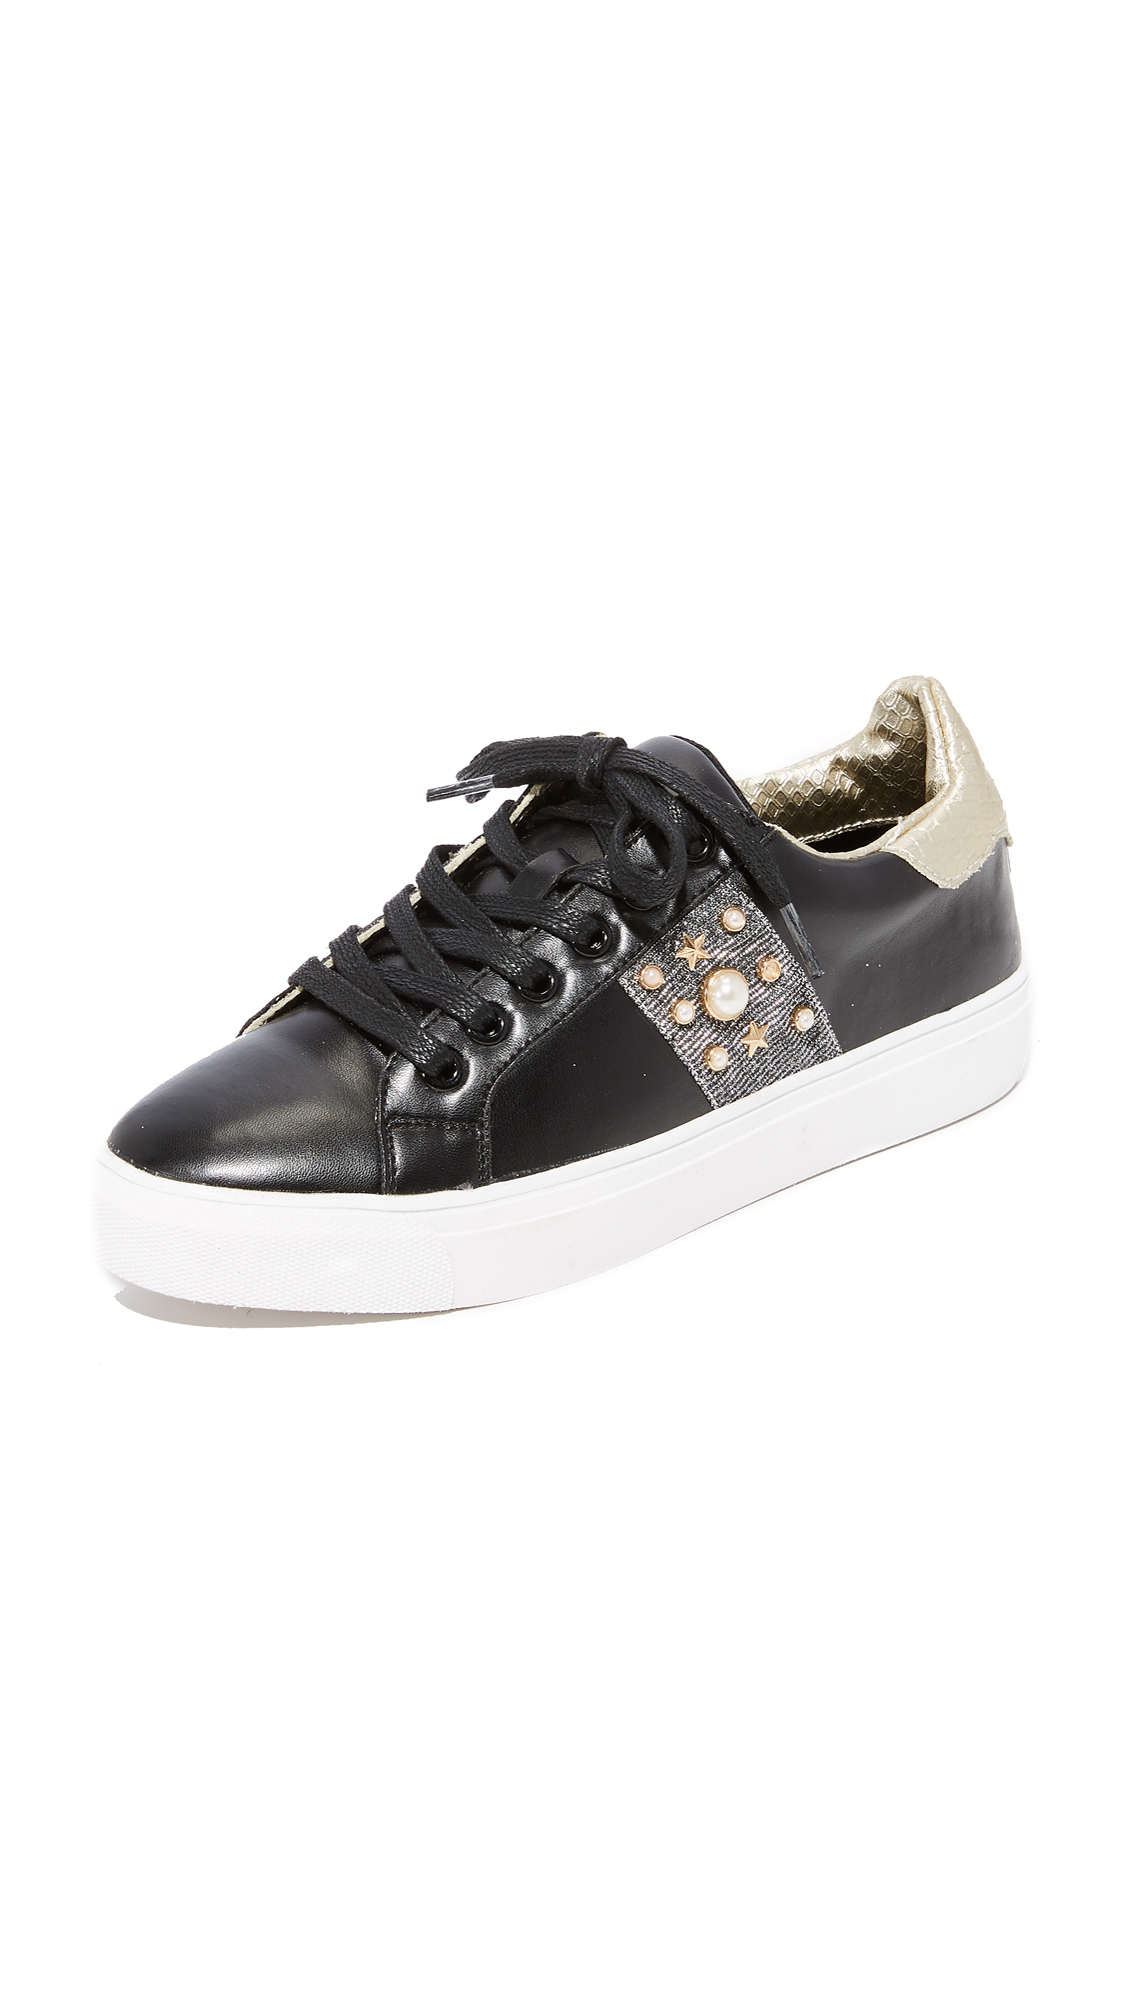 Steven Cory Classic Sneakers - Black